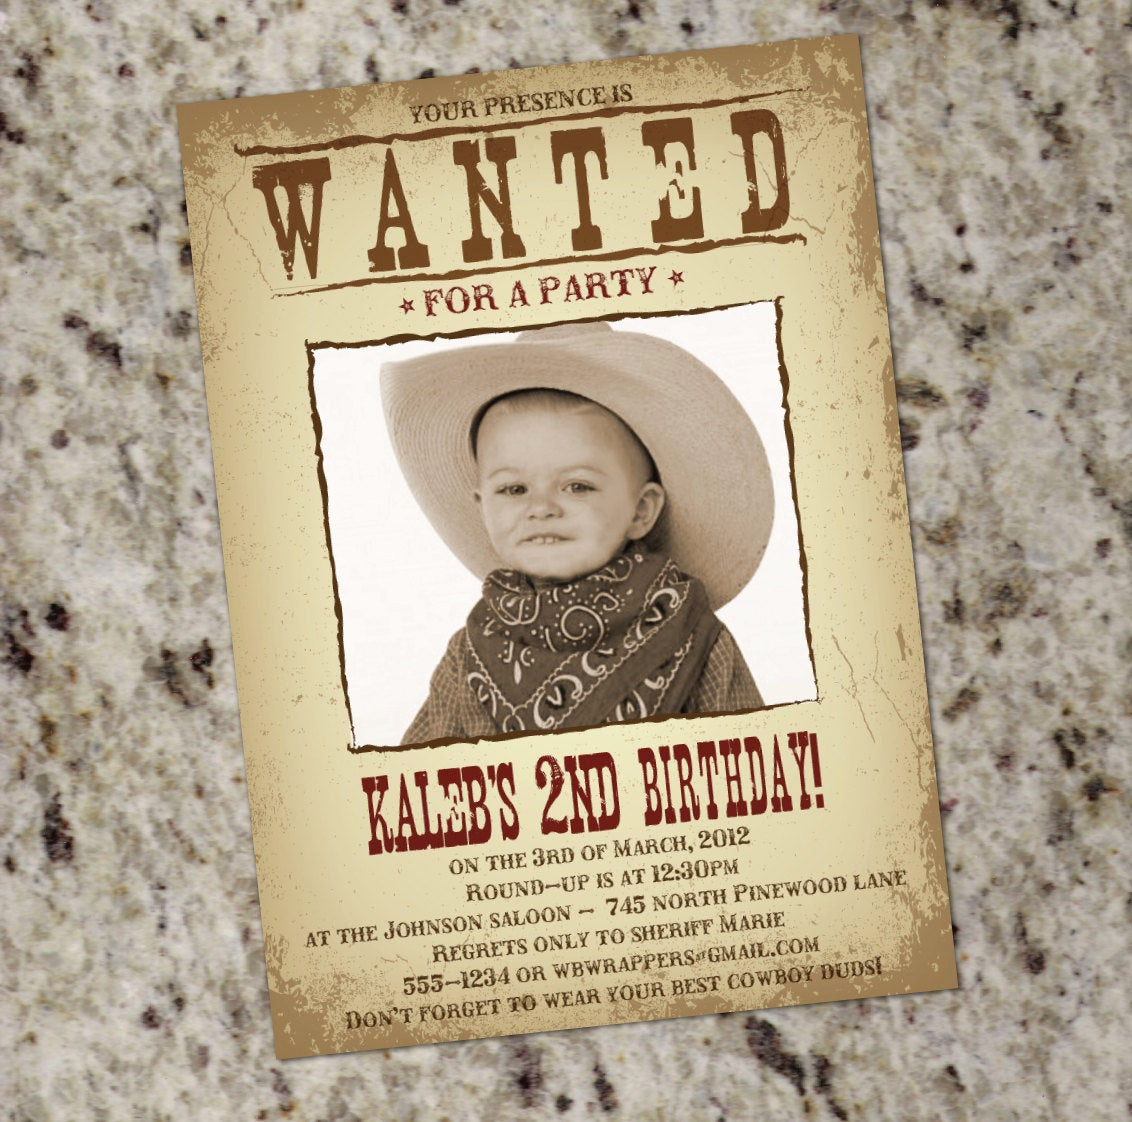 Western themed Invitation Templates Beautiful Wanted Poster Western themed Party Invitation Printable